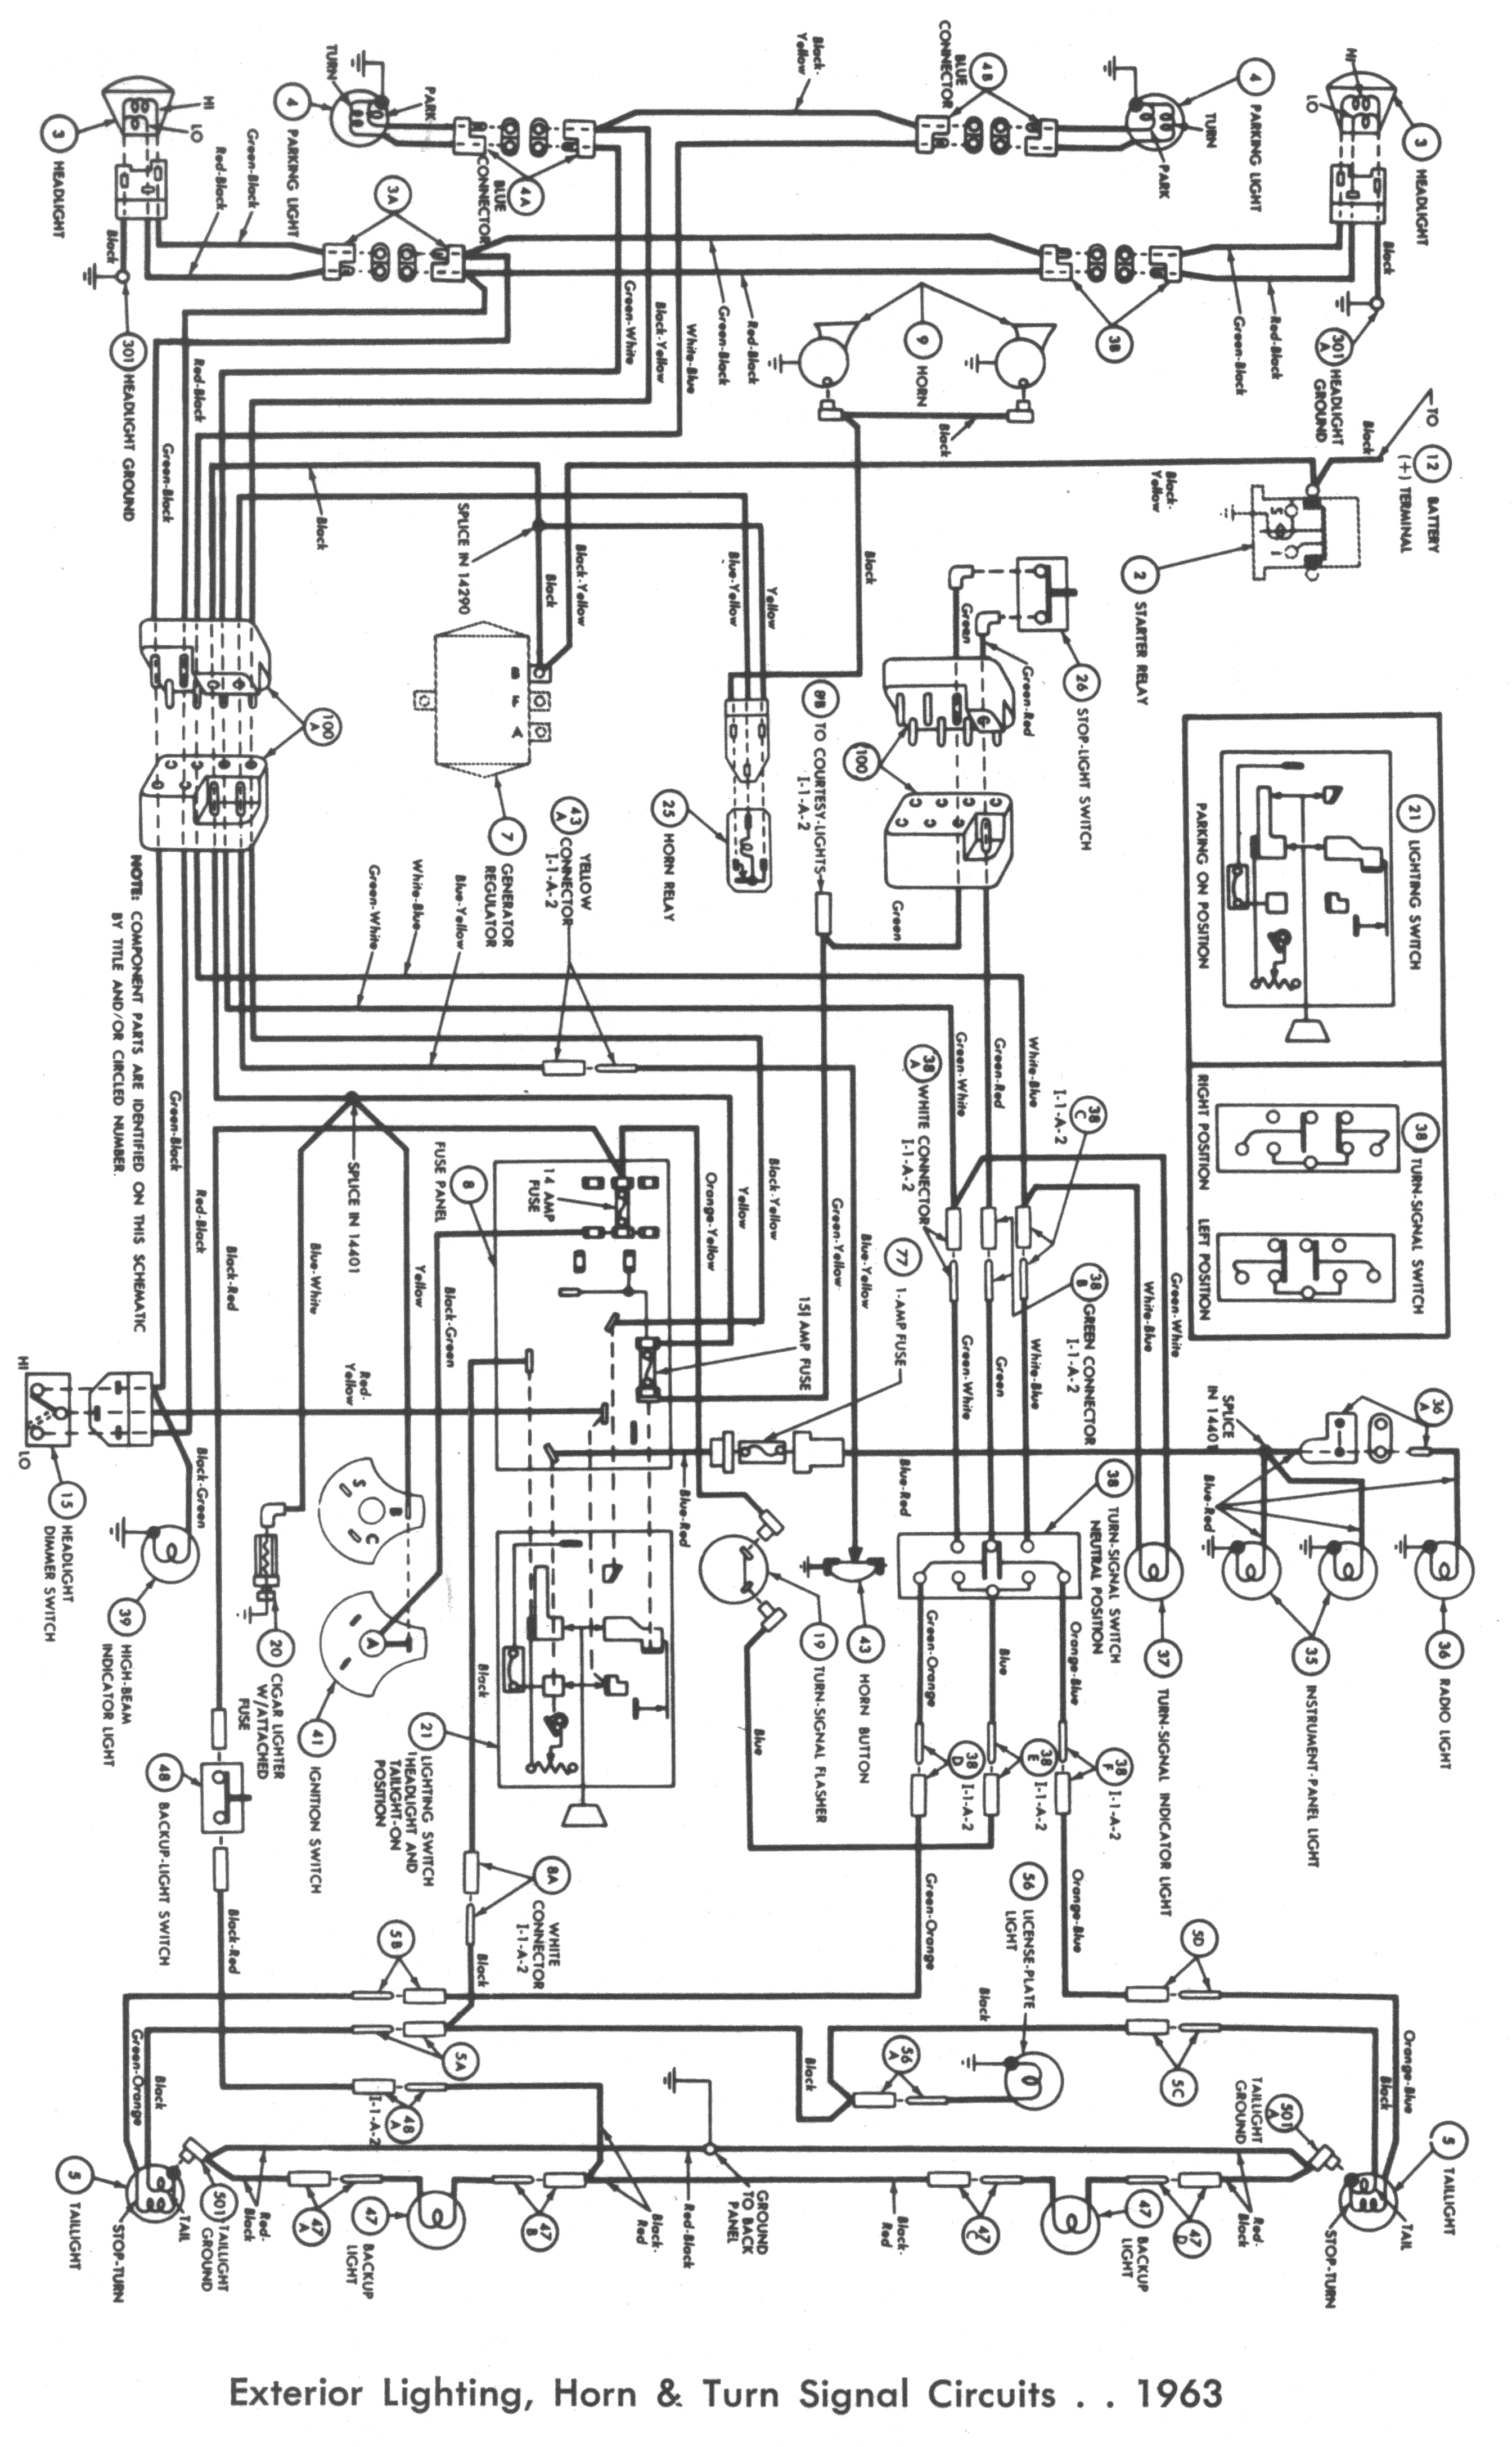 hight resolution of xf wiring diagram wiring diagram ford xf wiring diagram